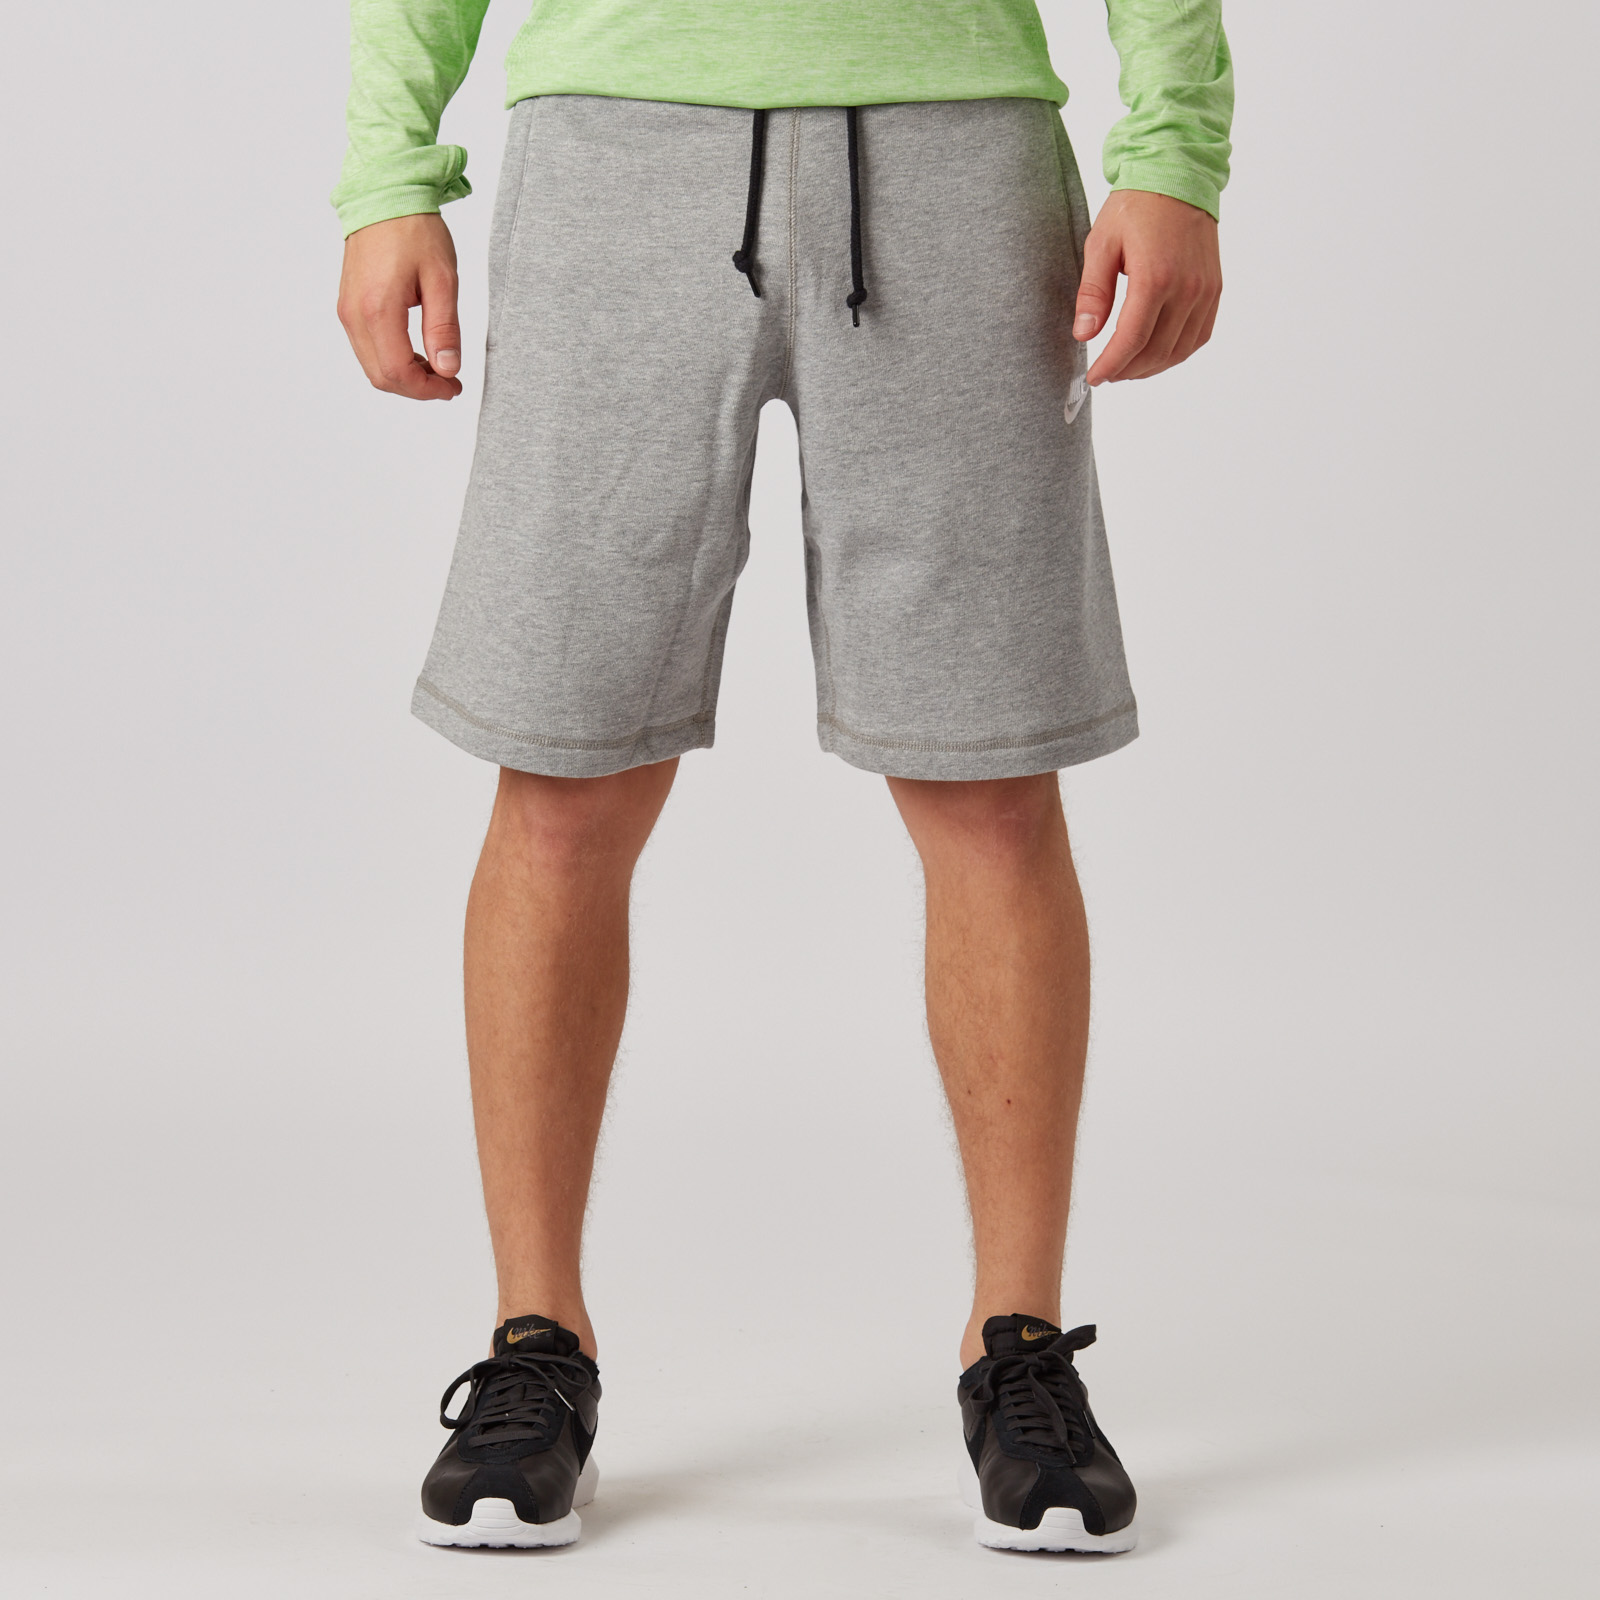 Nike AW77 French Terry Shorts 545358 063 Sneakersnstuff